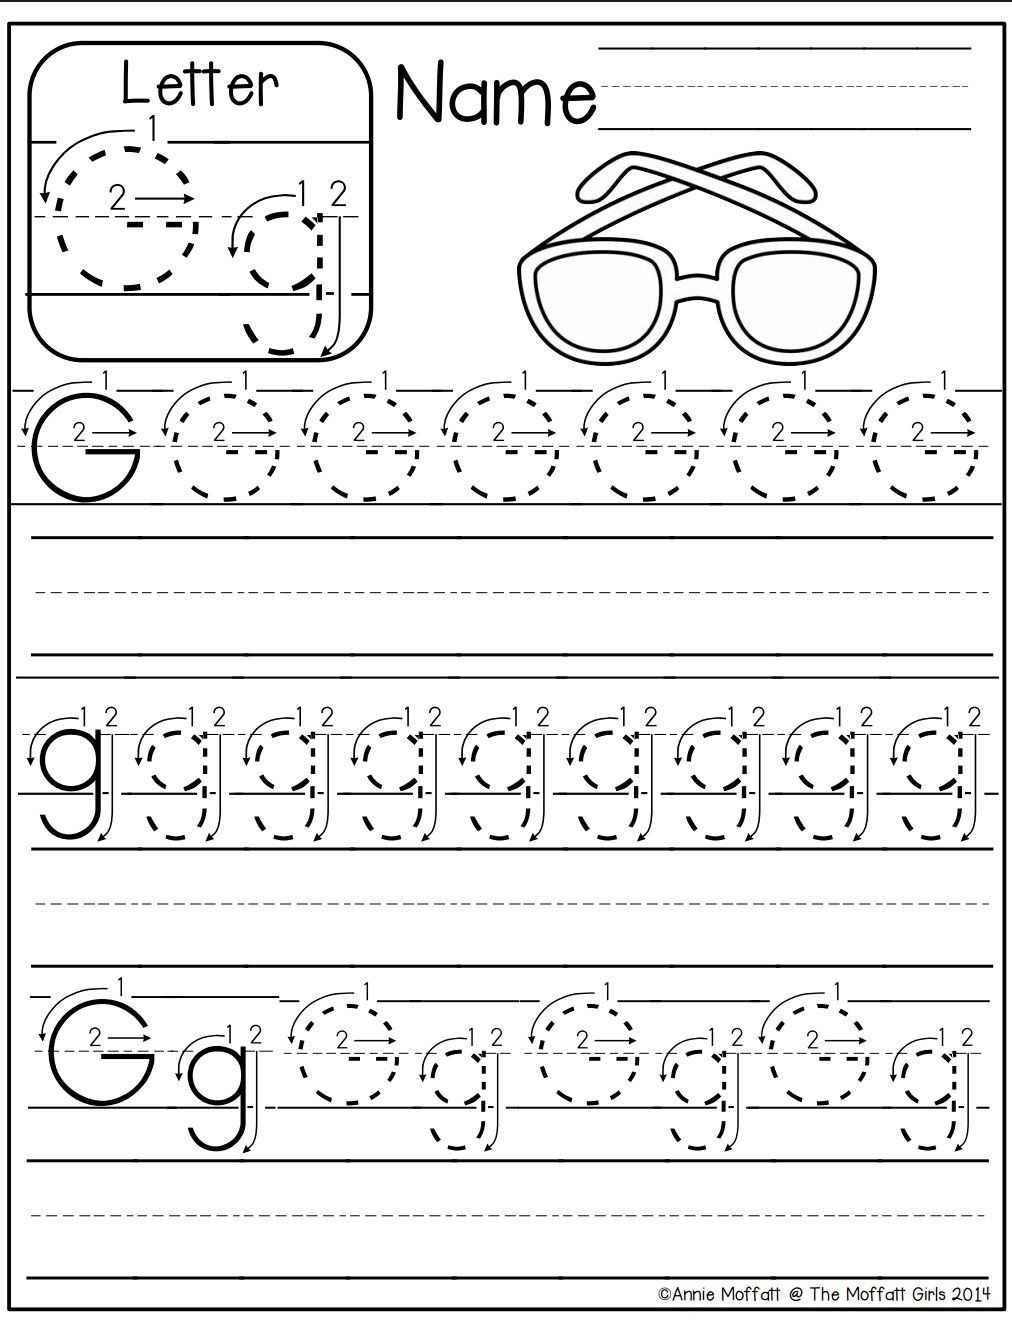 Letter G Worksheets Preschool Letter G Worksheet